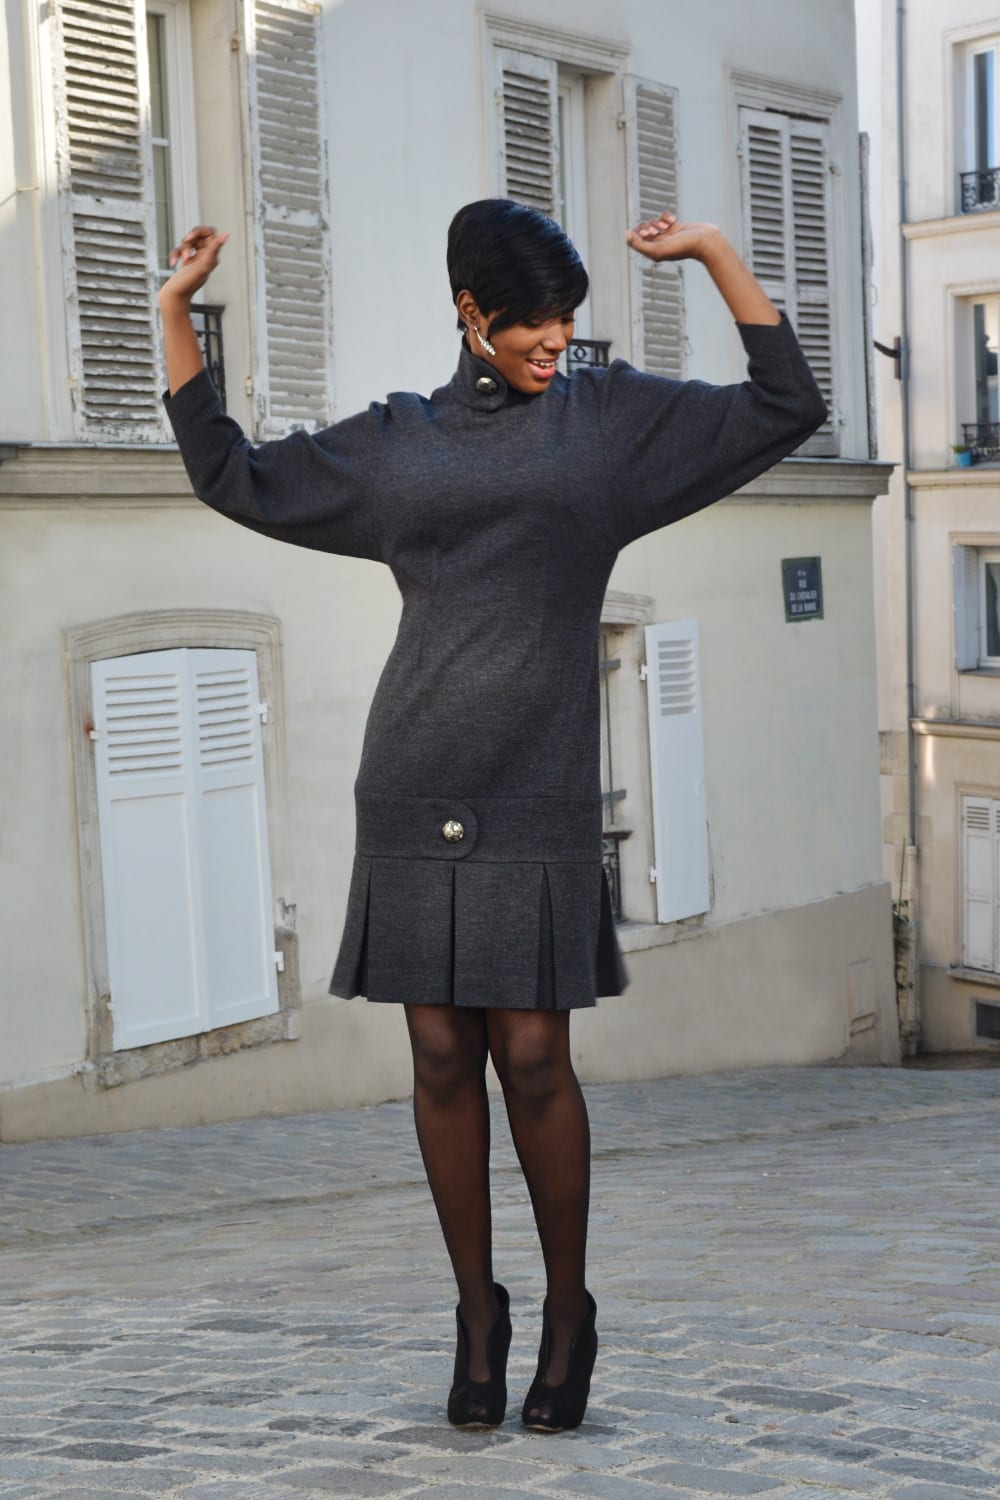 Fashion Paris. Gray wool dress. Long sleeves with crossed collar closed by a big silver button. Erik Schaix fashion designer Paris.